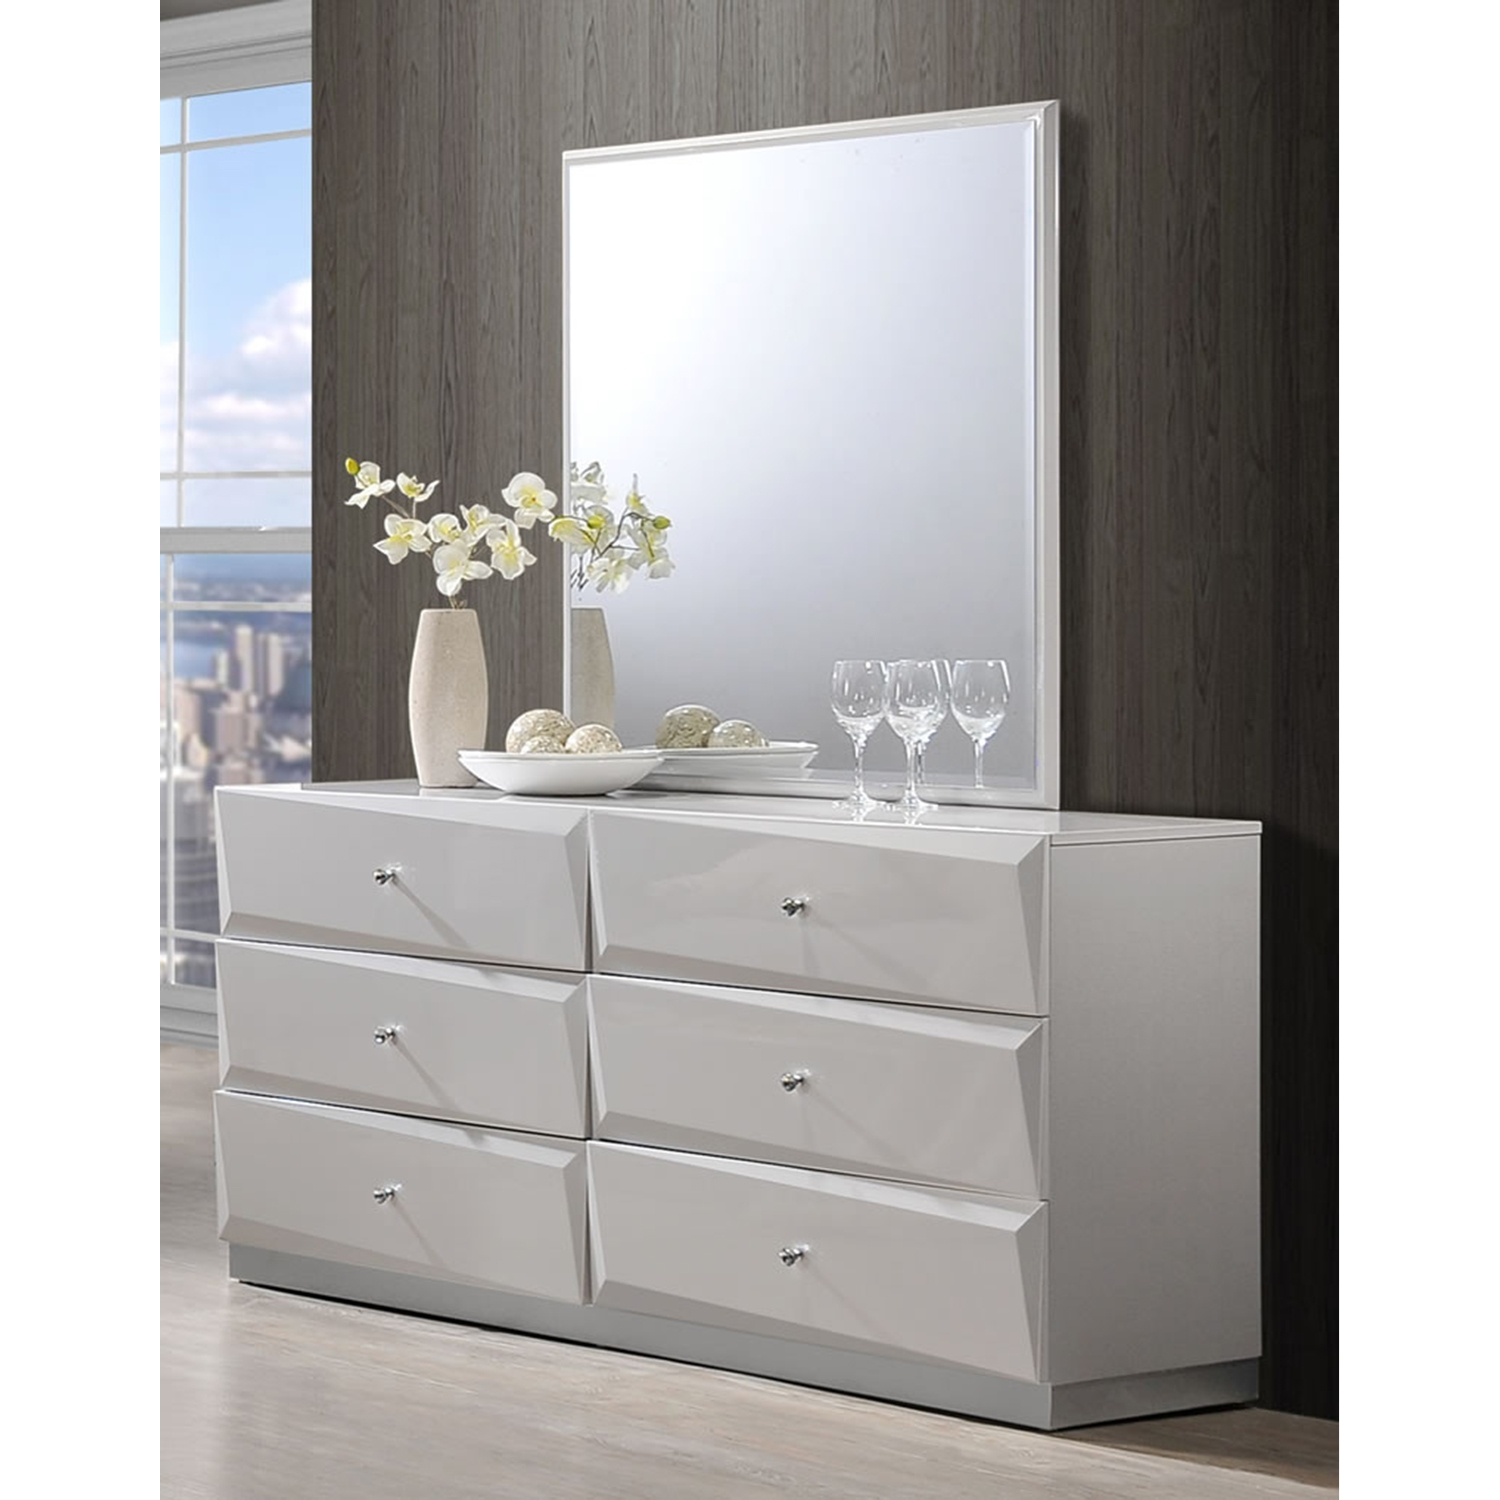 Barcelona Bedroom Set in High Gloss Silver Line - GLO-BARCELONA-116-BED-SET